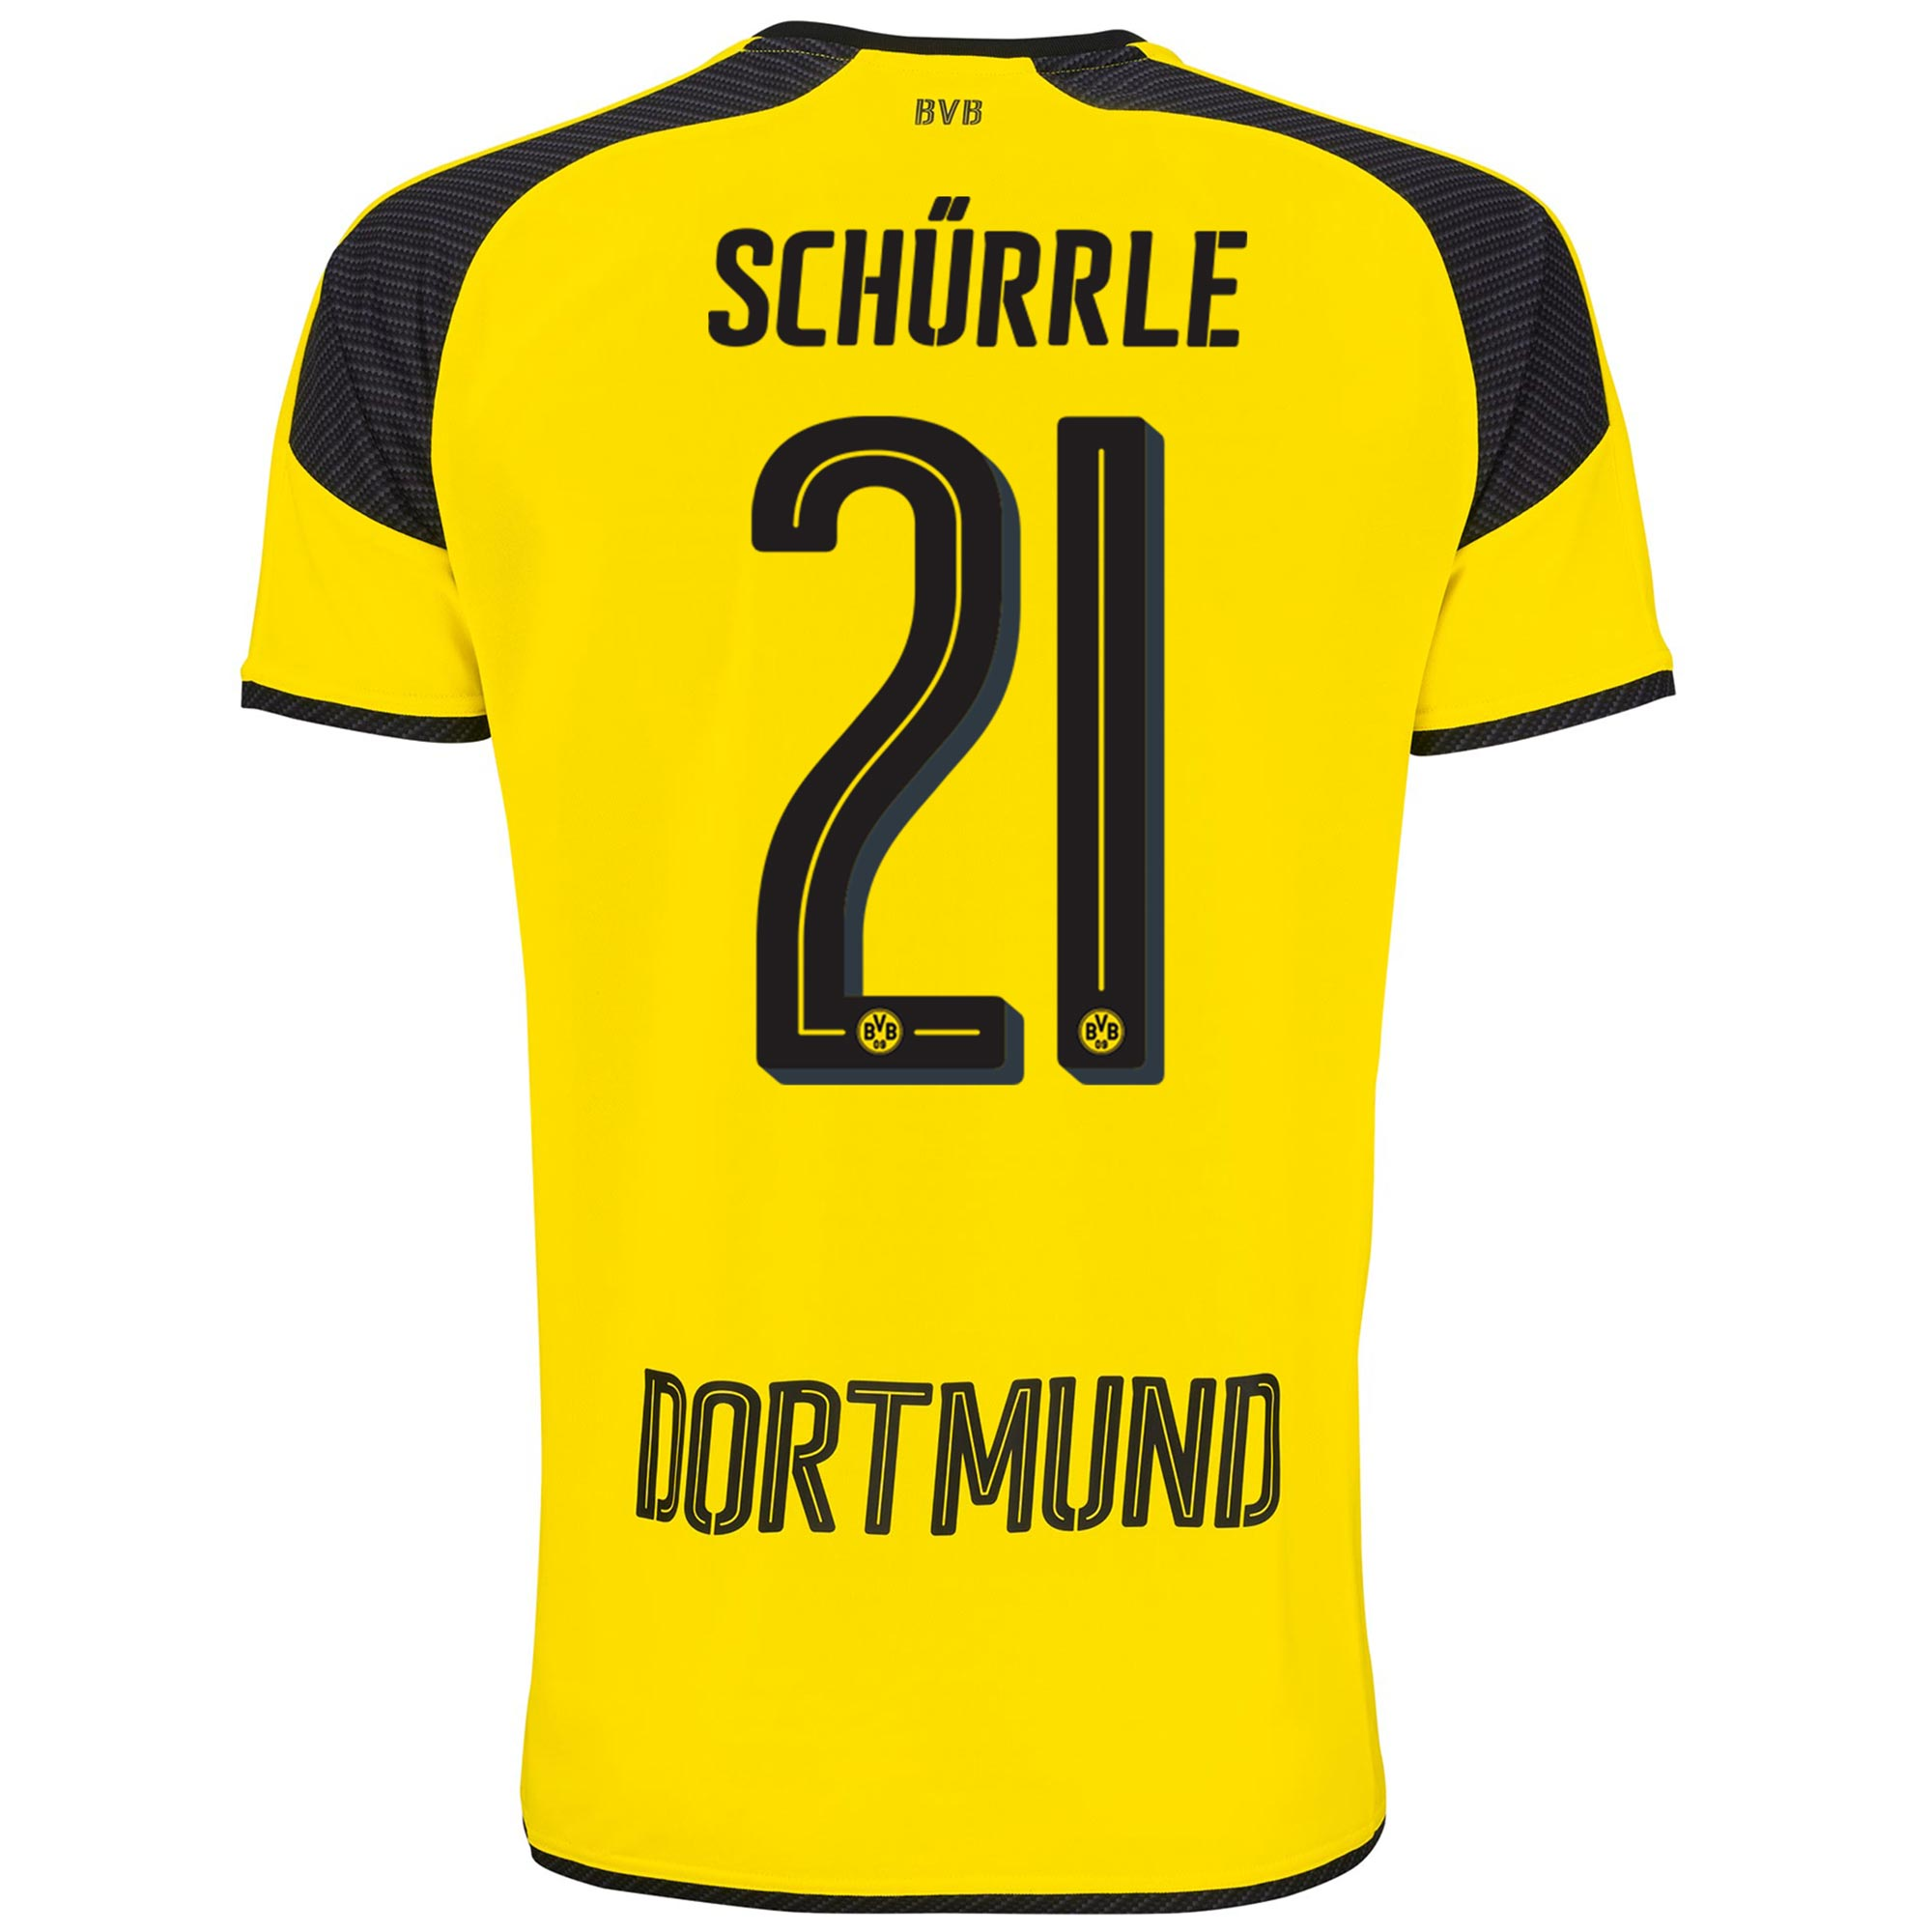 Image of BVB International Home Shirt 2016-17 with Schürrle 21 printing, N/A